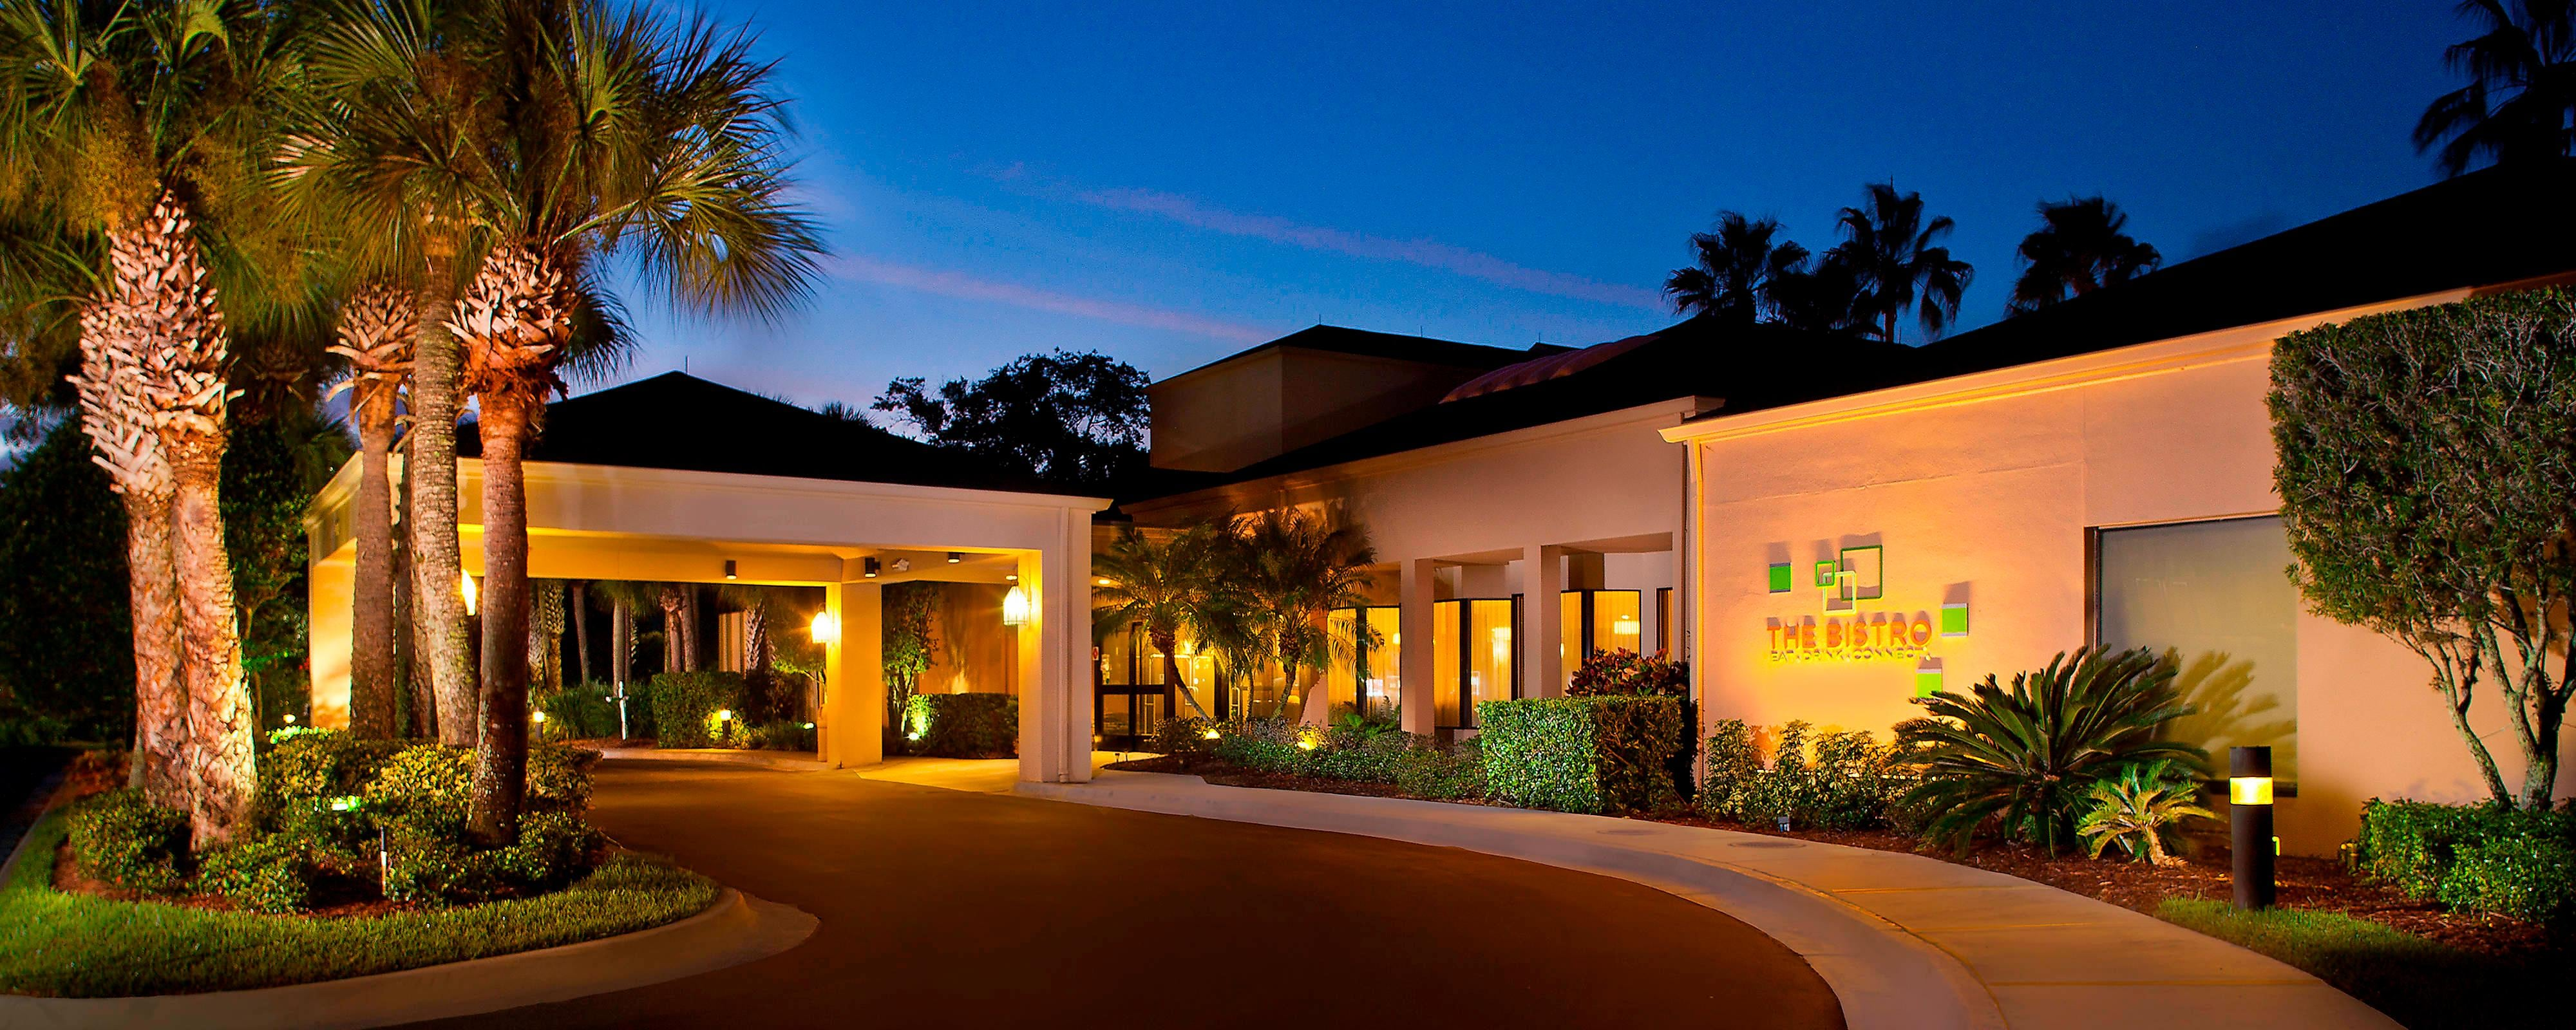 Hotels in Melbourne Florida